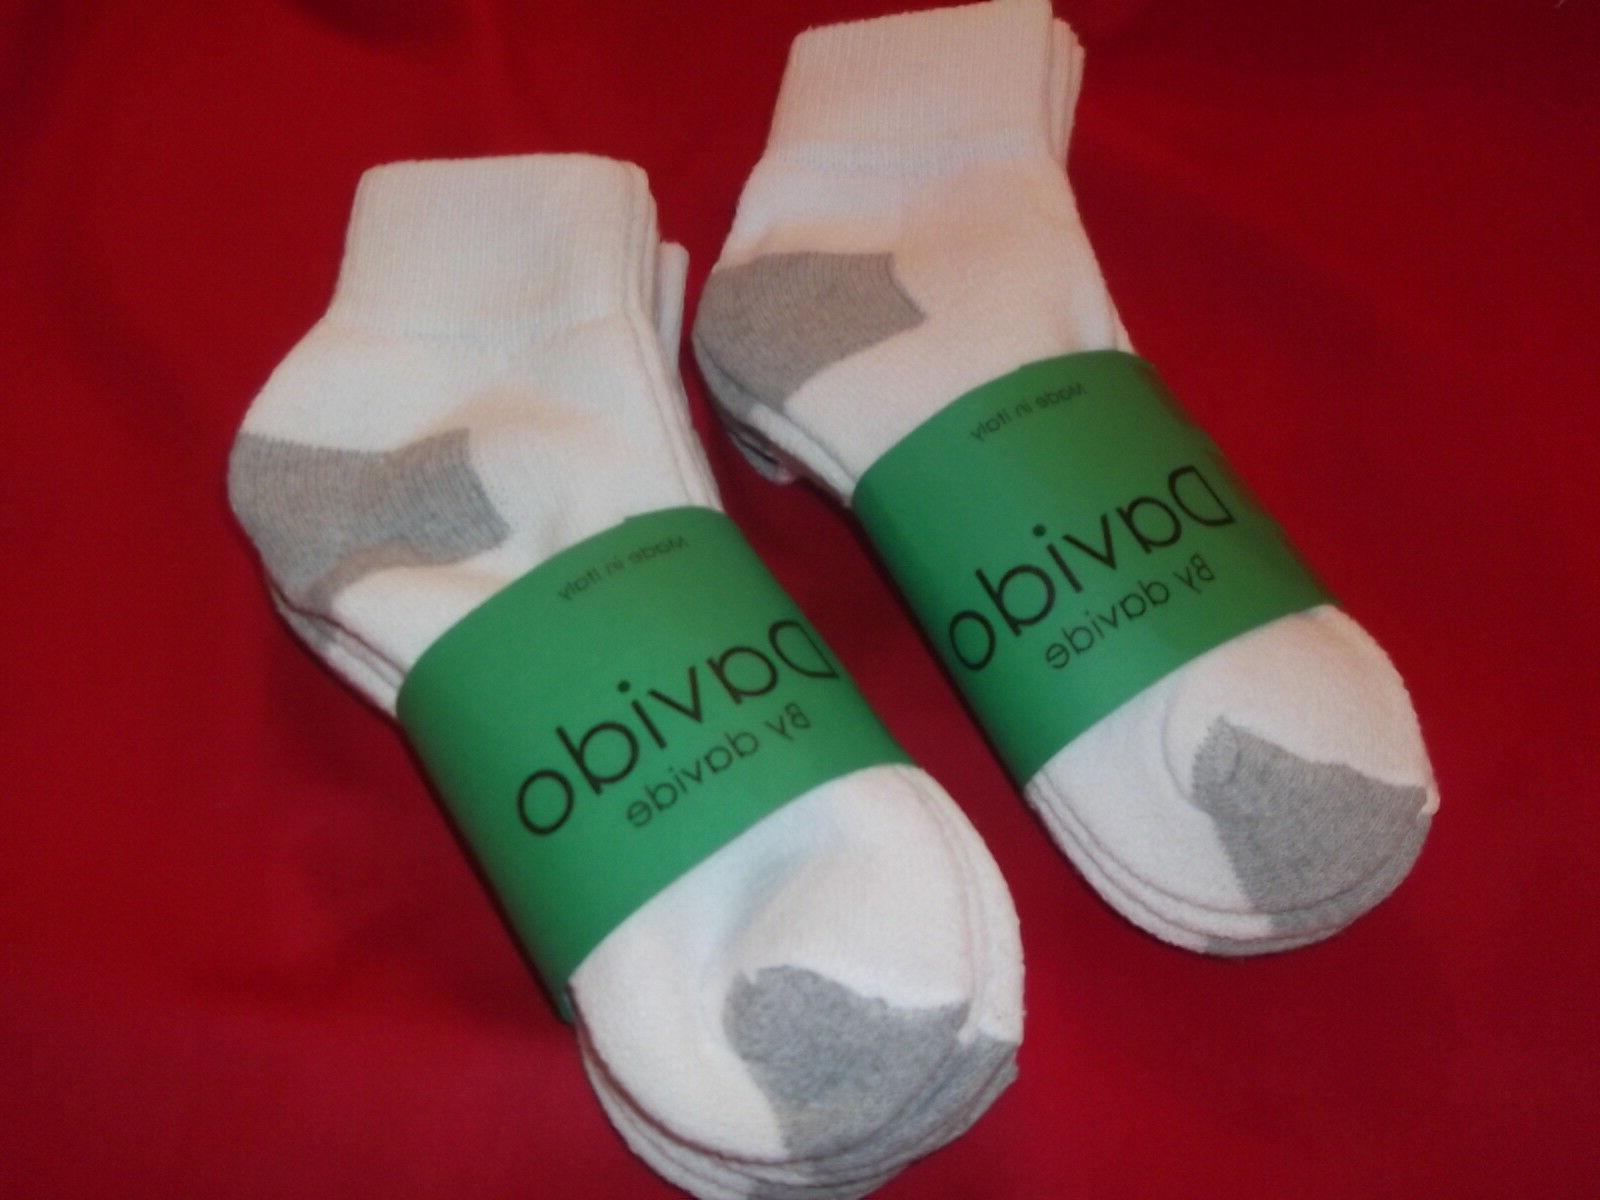 Davido ankle/quarter made in 100% cotton 8 10-13